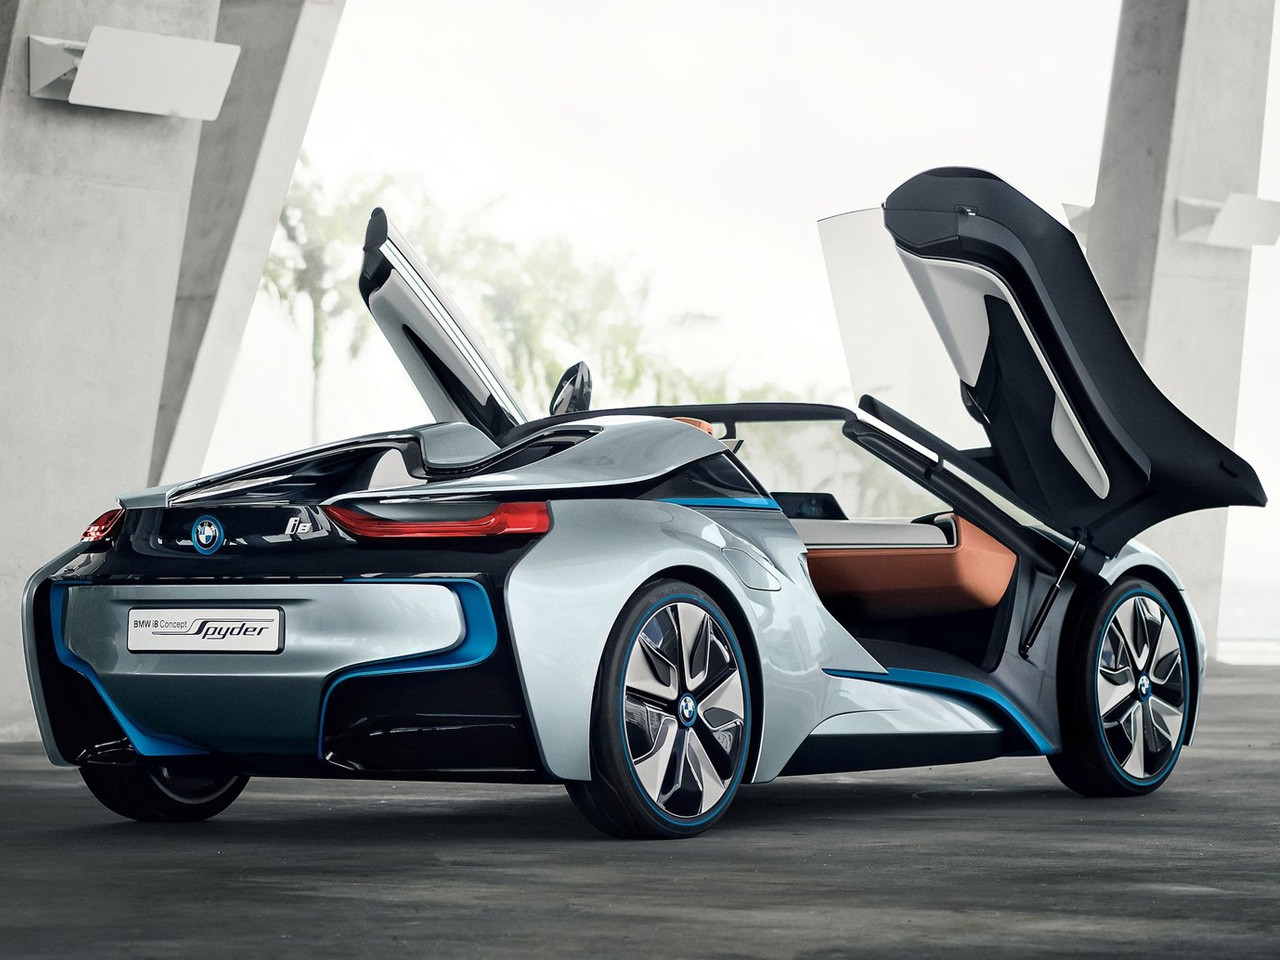 2012-BMW-i8-Spyder-Concept-Rear-Angle-Door-Open.jpg